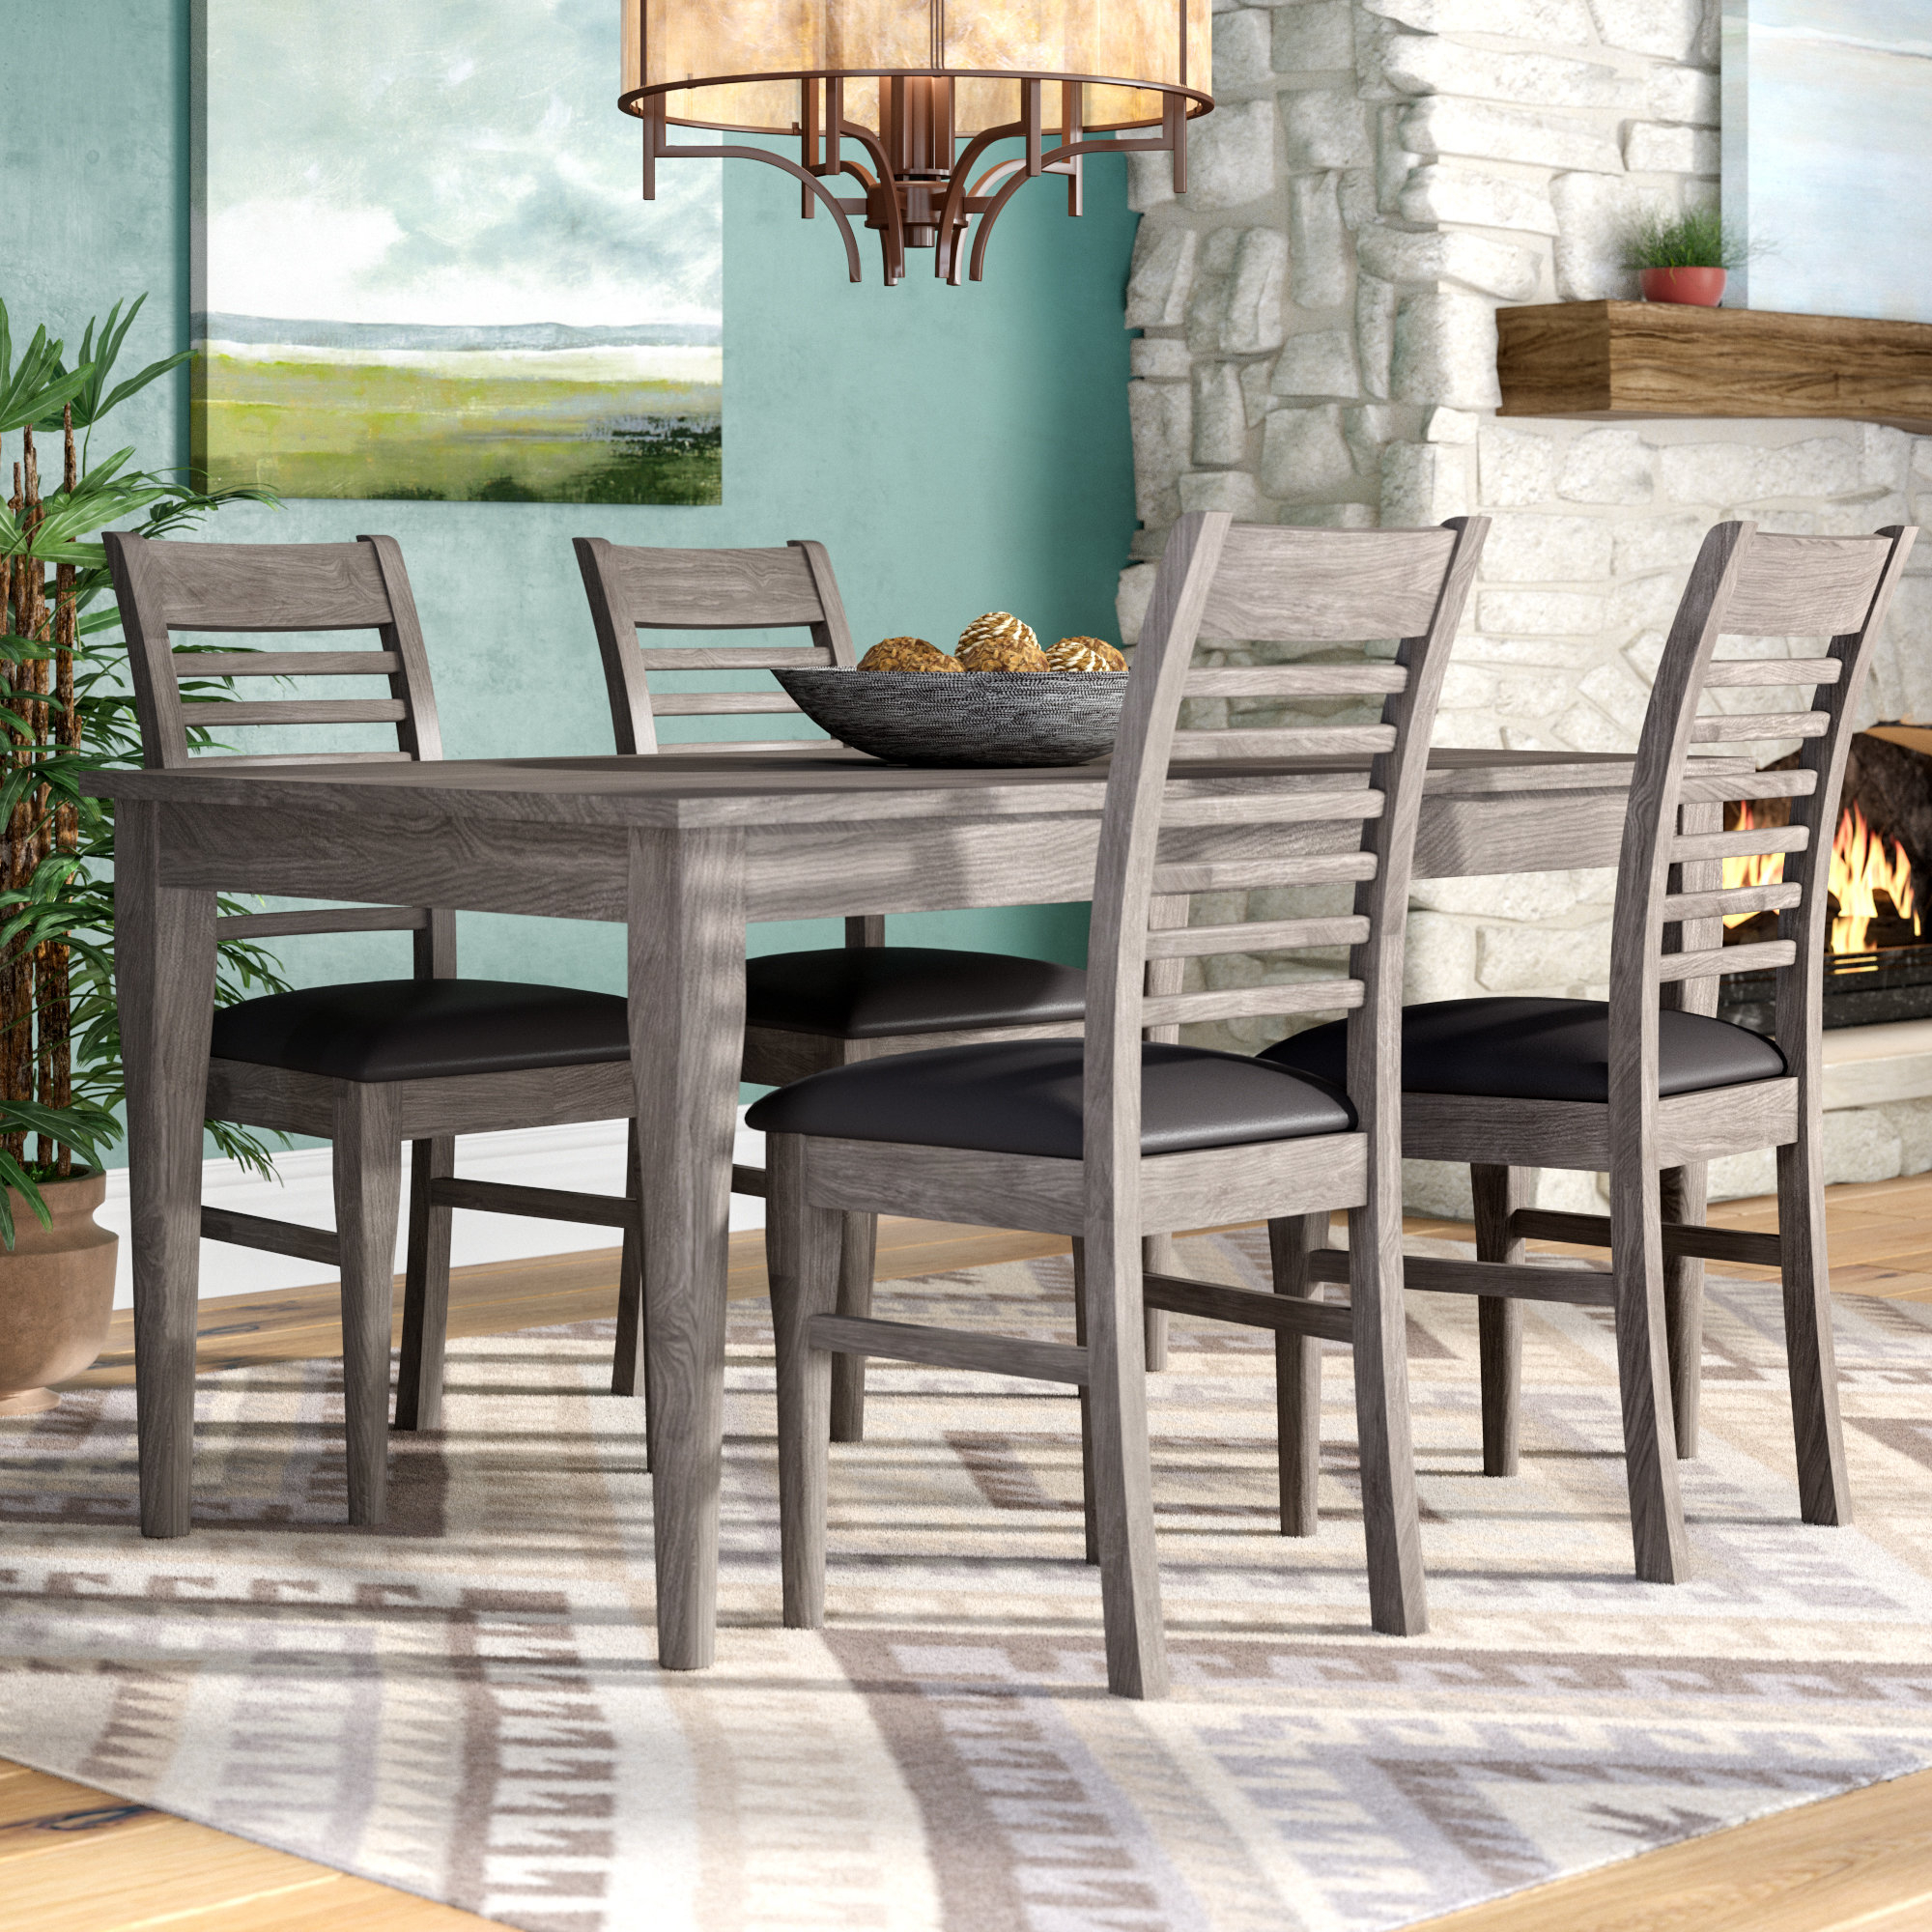 Inspiration about Wayfair Regarding Well Liked Hanska Wooden 5 Piece Counter Height Dining Table Sets (Set Of 5) (#4 of 20)